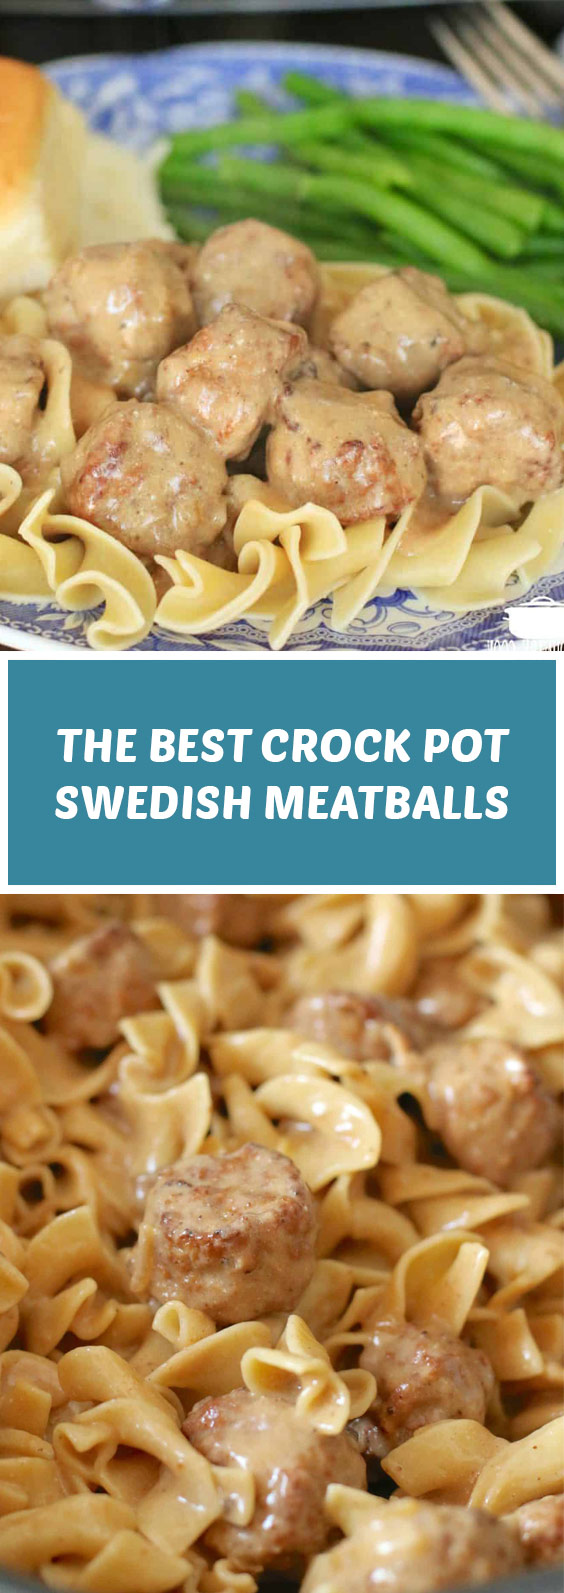 The Best Crock Pot Swedish Meatballs #crockpot #meatballs